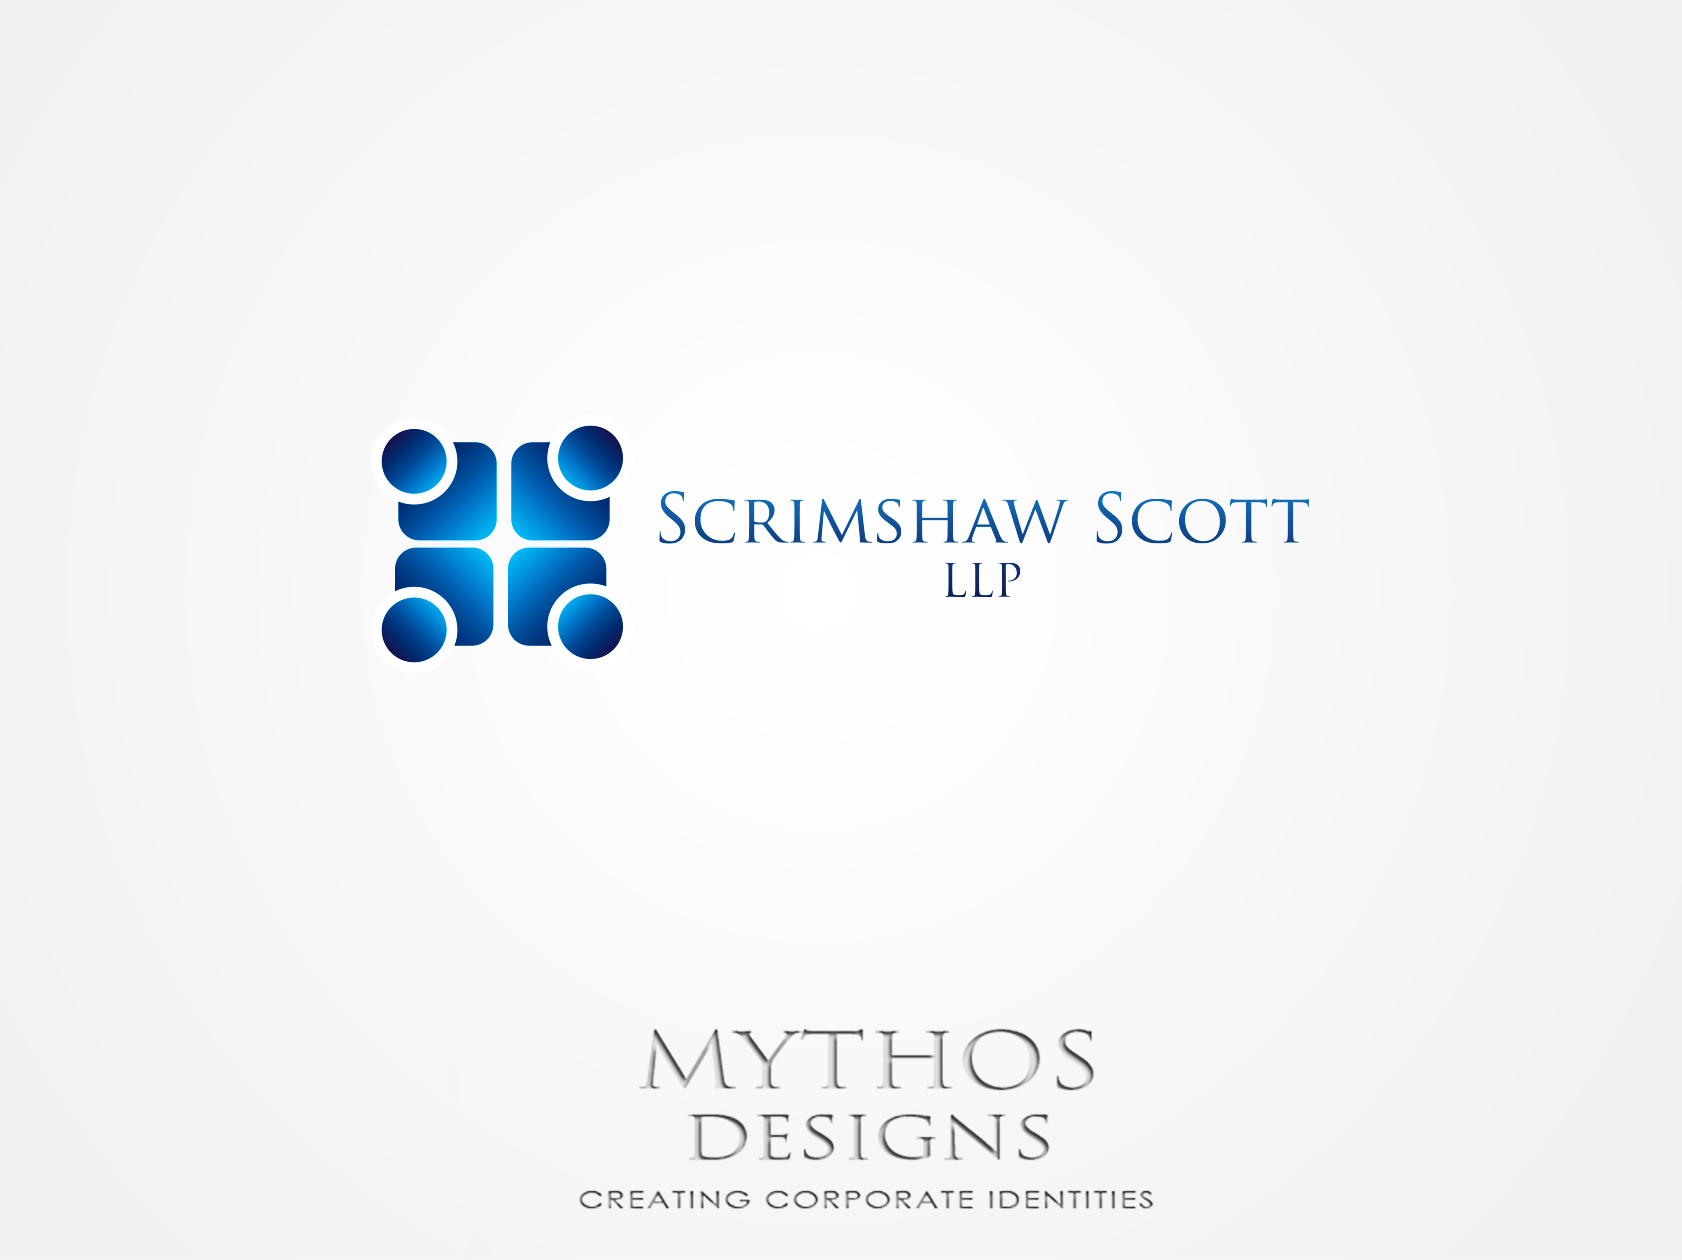 Logo Design by Mythos Designs - Entry No. 2 in the Logo Design Contest Creative Logo Design for Scrimshaw Scott LLP.